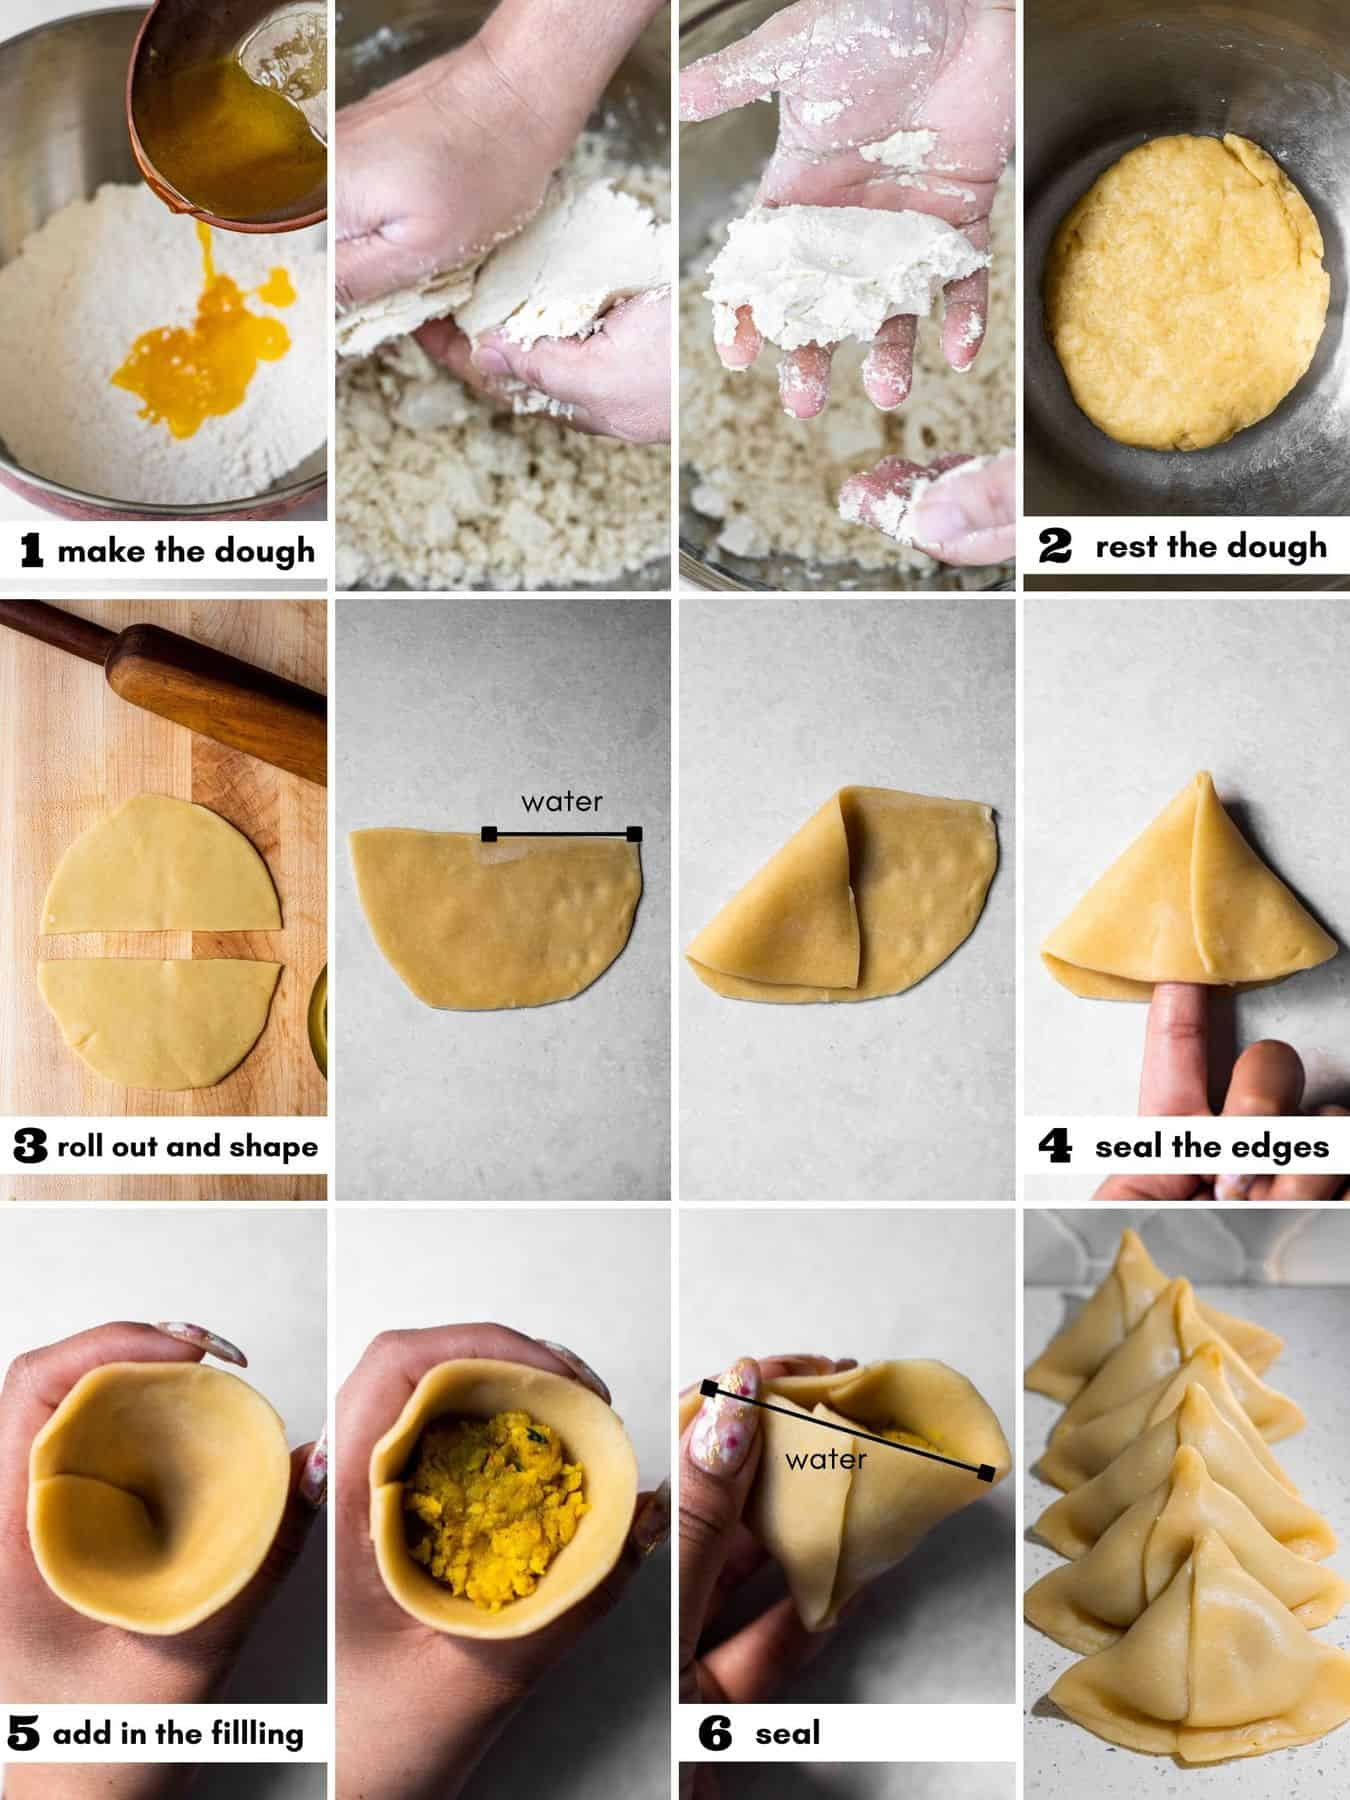 an infographic of making the samosa dough, shaping the samosa, filling it, and sealing it